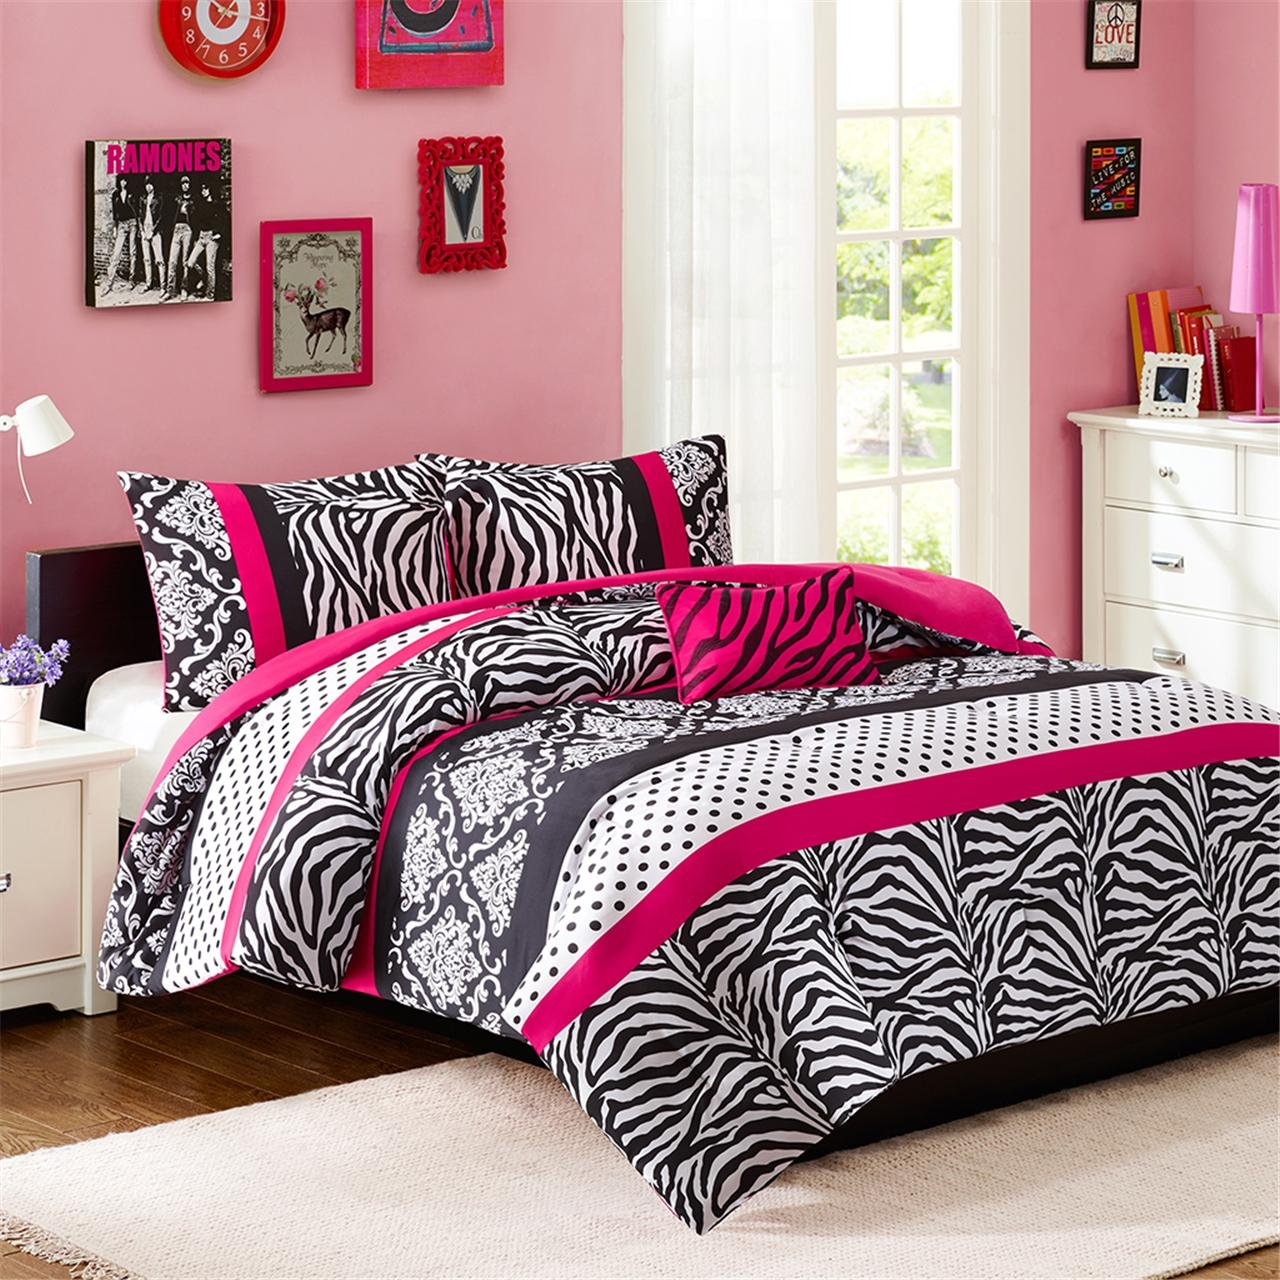 Mi-Zone Reagan Comforter Set, Pink, Twin/Twin X-Large